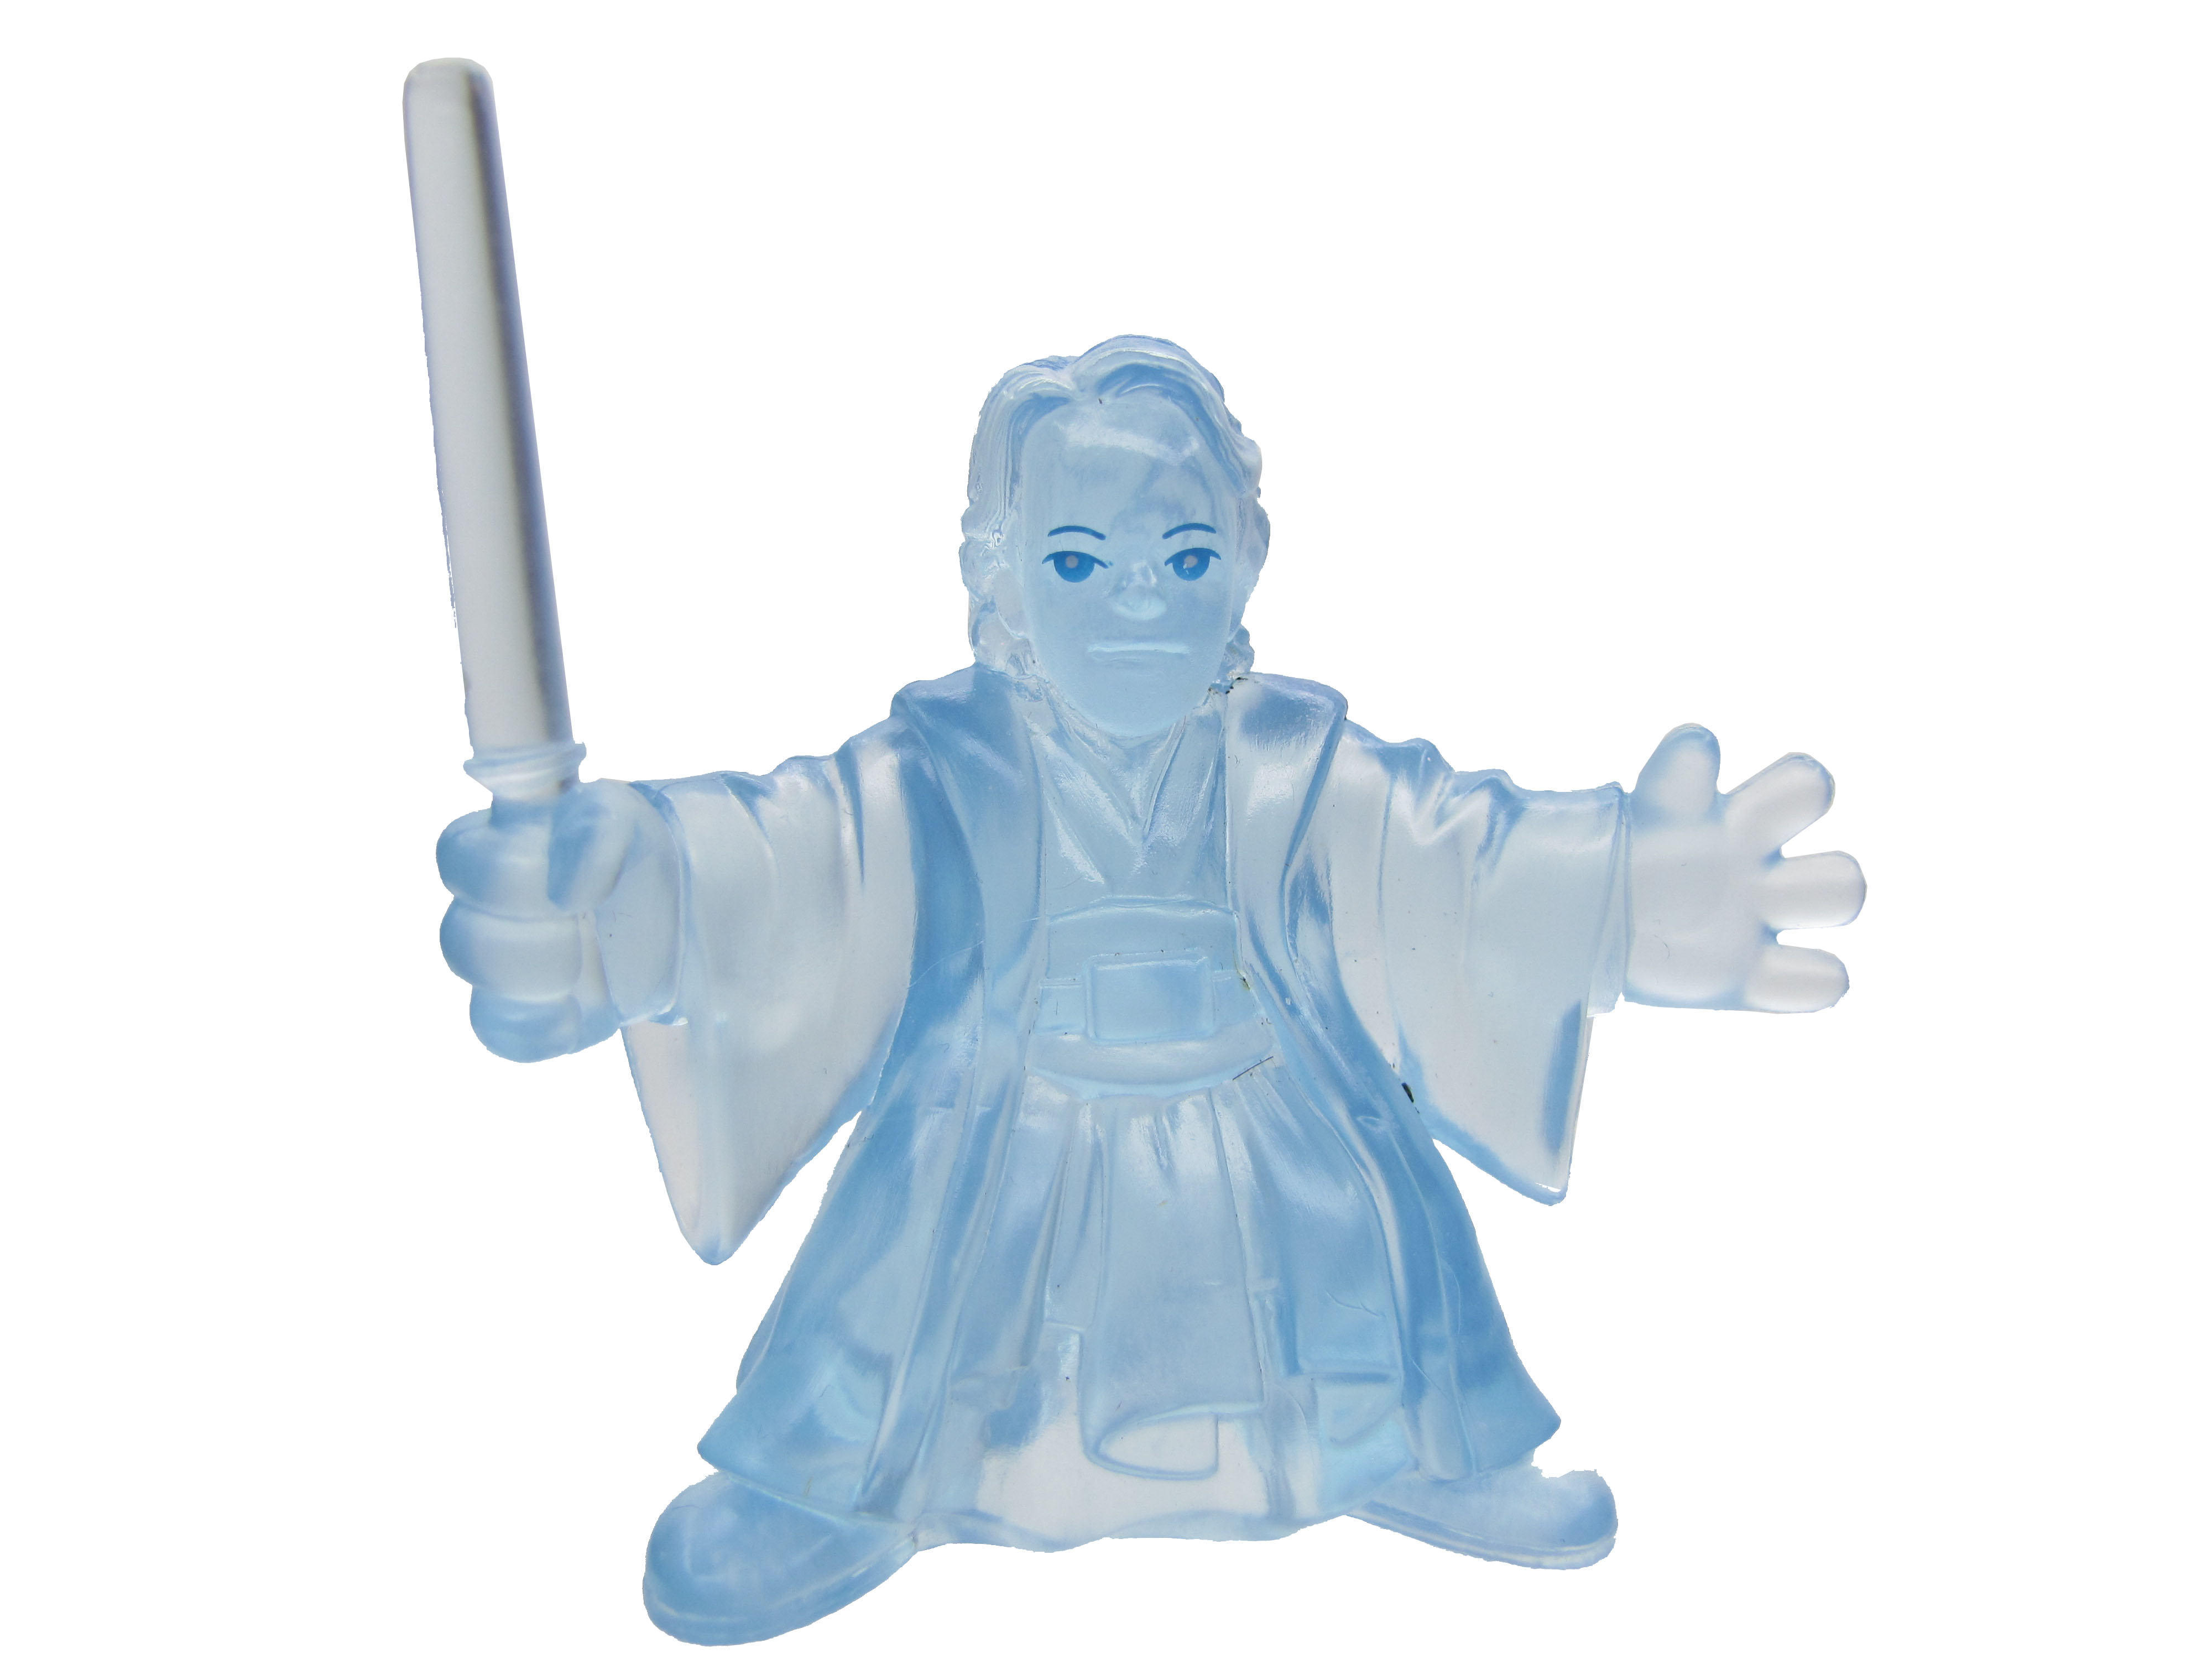 Star Wars Galactic Heroes Spirit Anakin Endor Celebration Comple